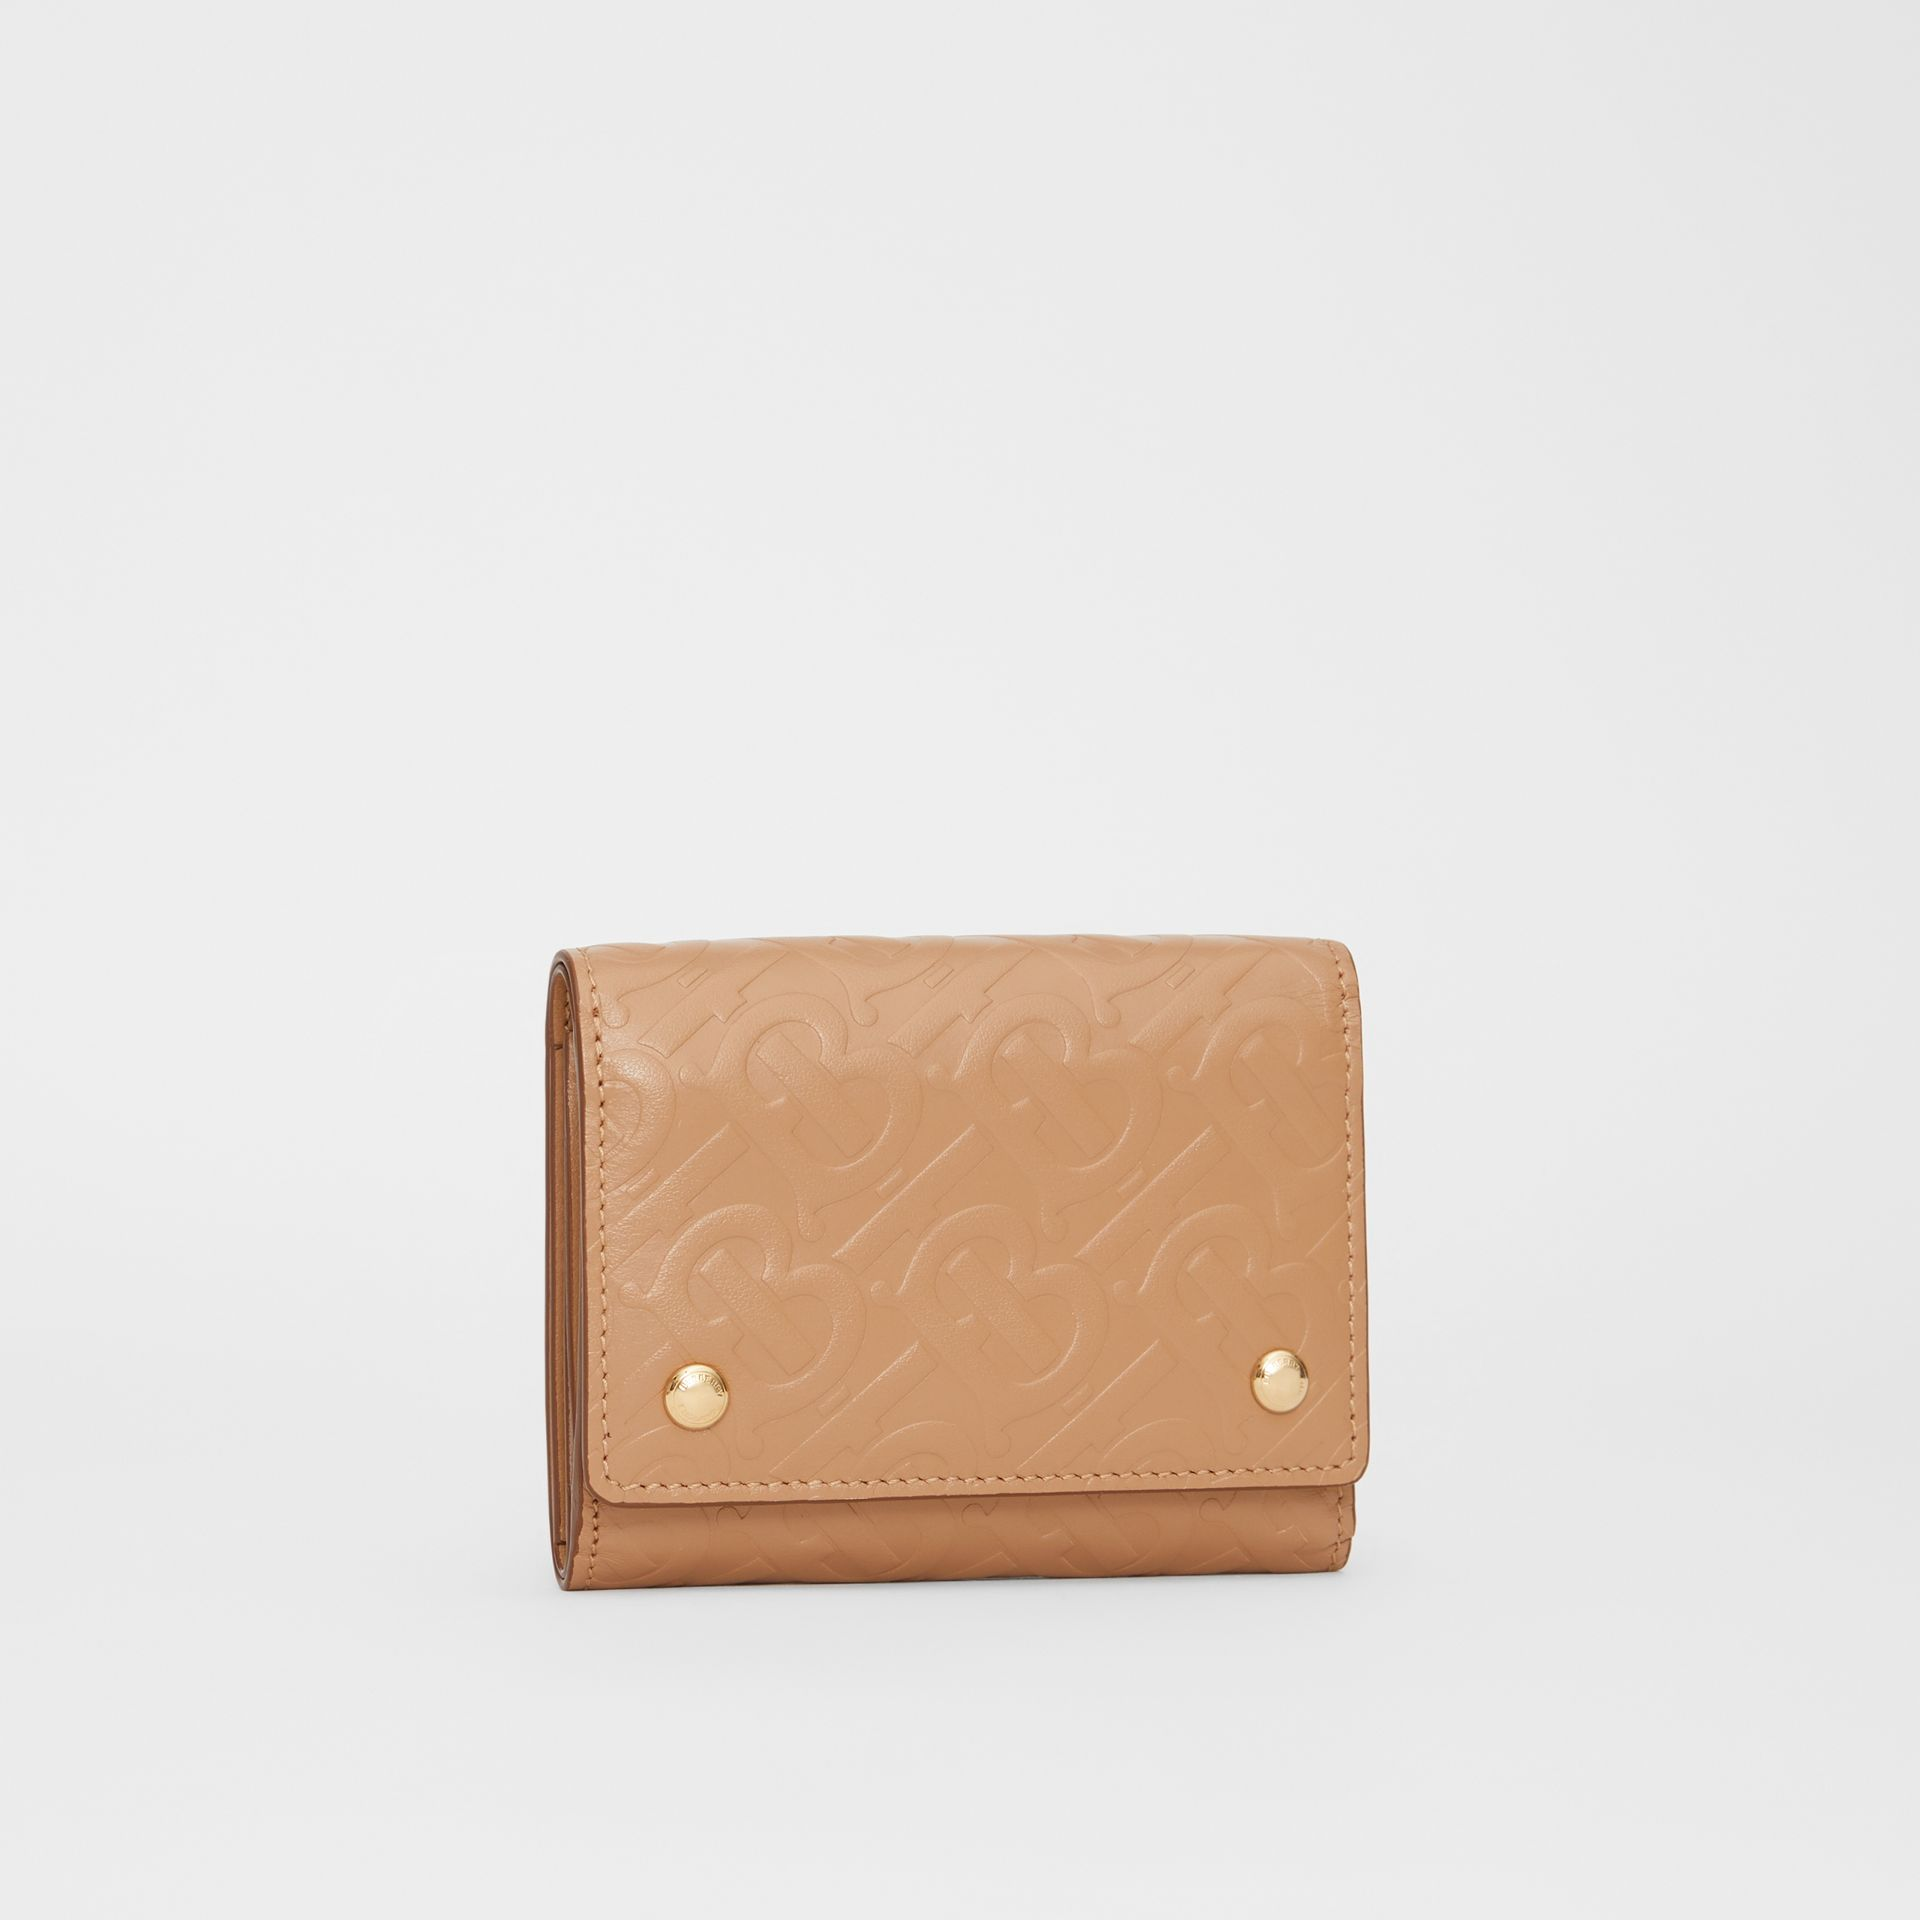 Small Monogram Leather Folding Wallet in Light Camel - Women | Burberry Singapore - gallery image 3